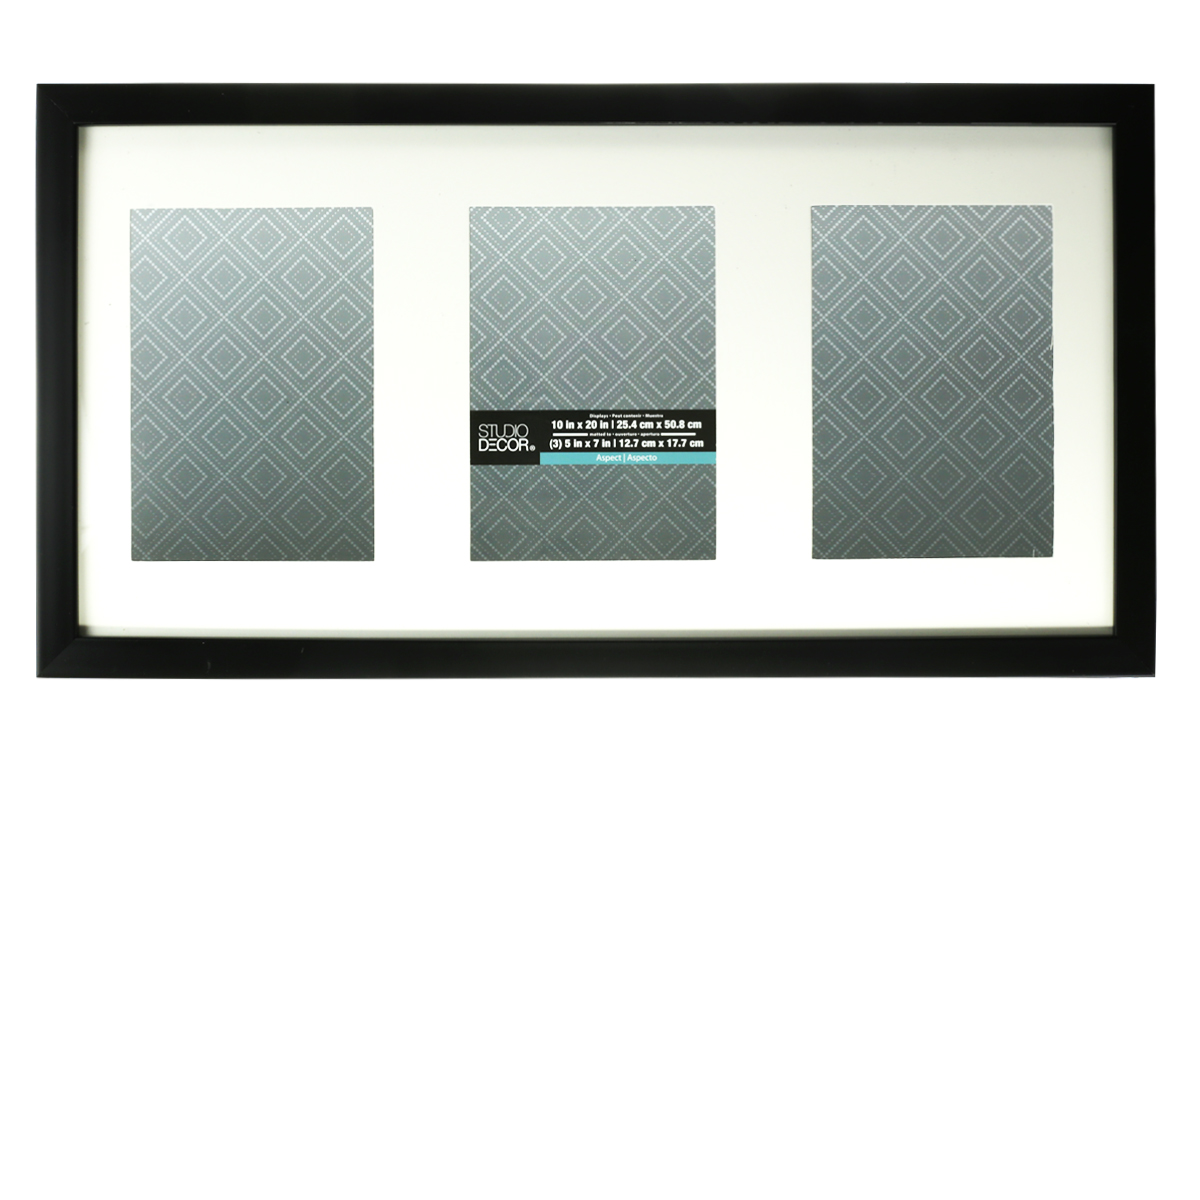 aspect collection black collage frame by studio decor 3 openings - Collage Photo Frames